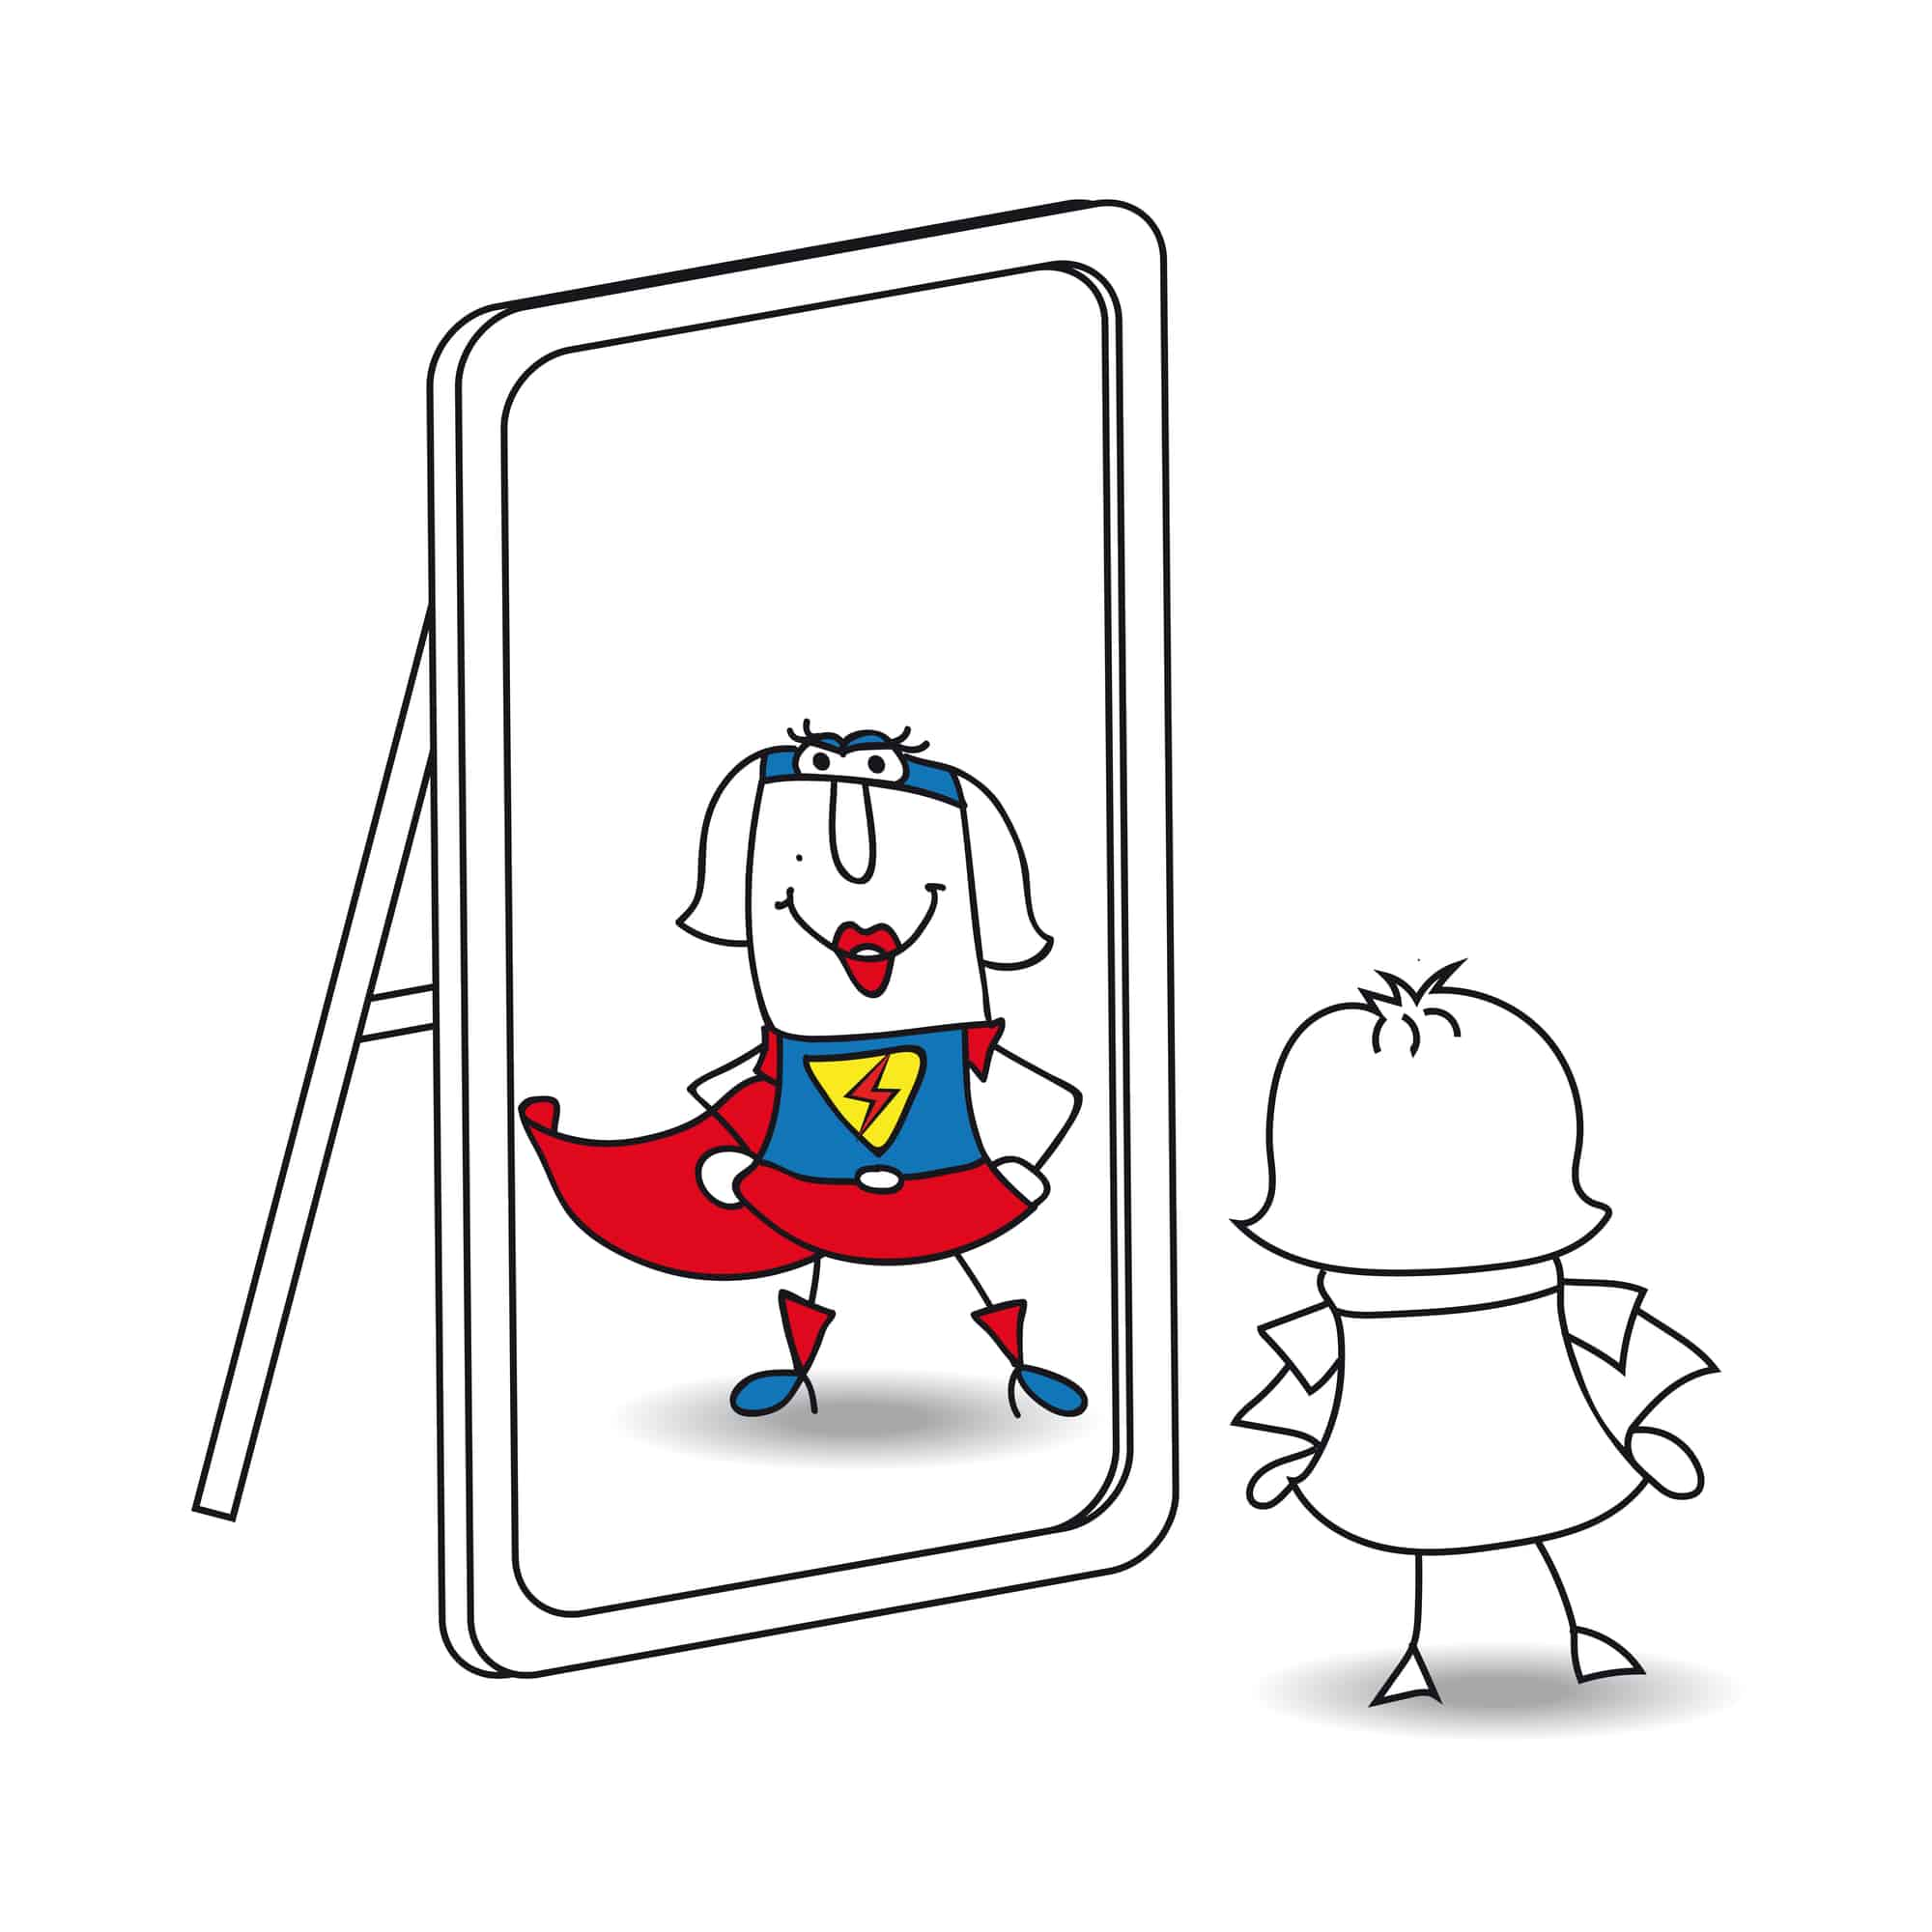 image of character in mirror for how to stop obsessing over a rejection